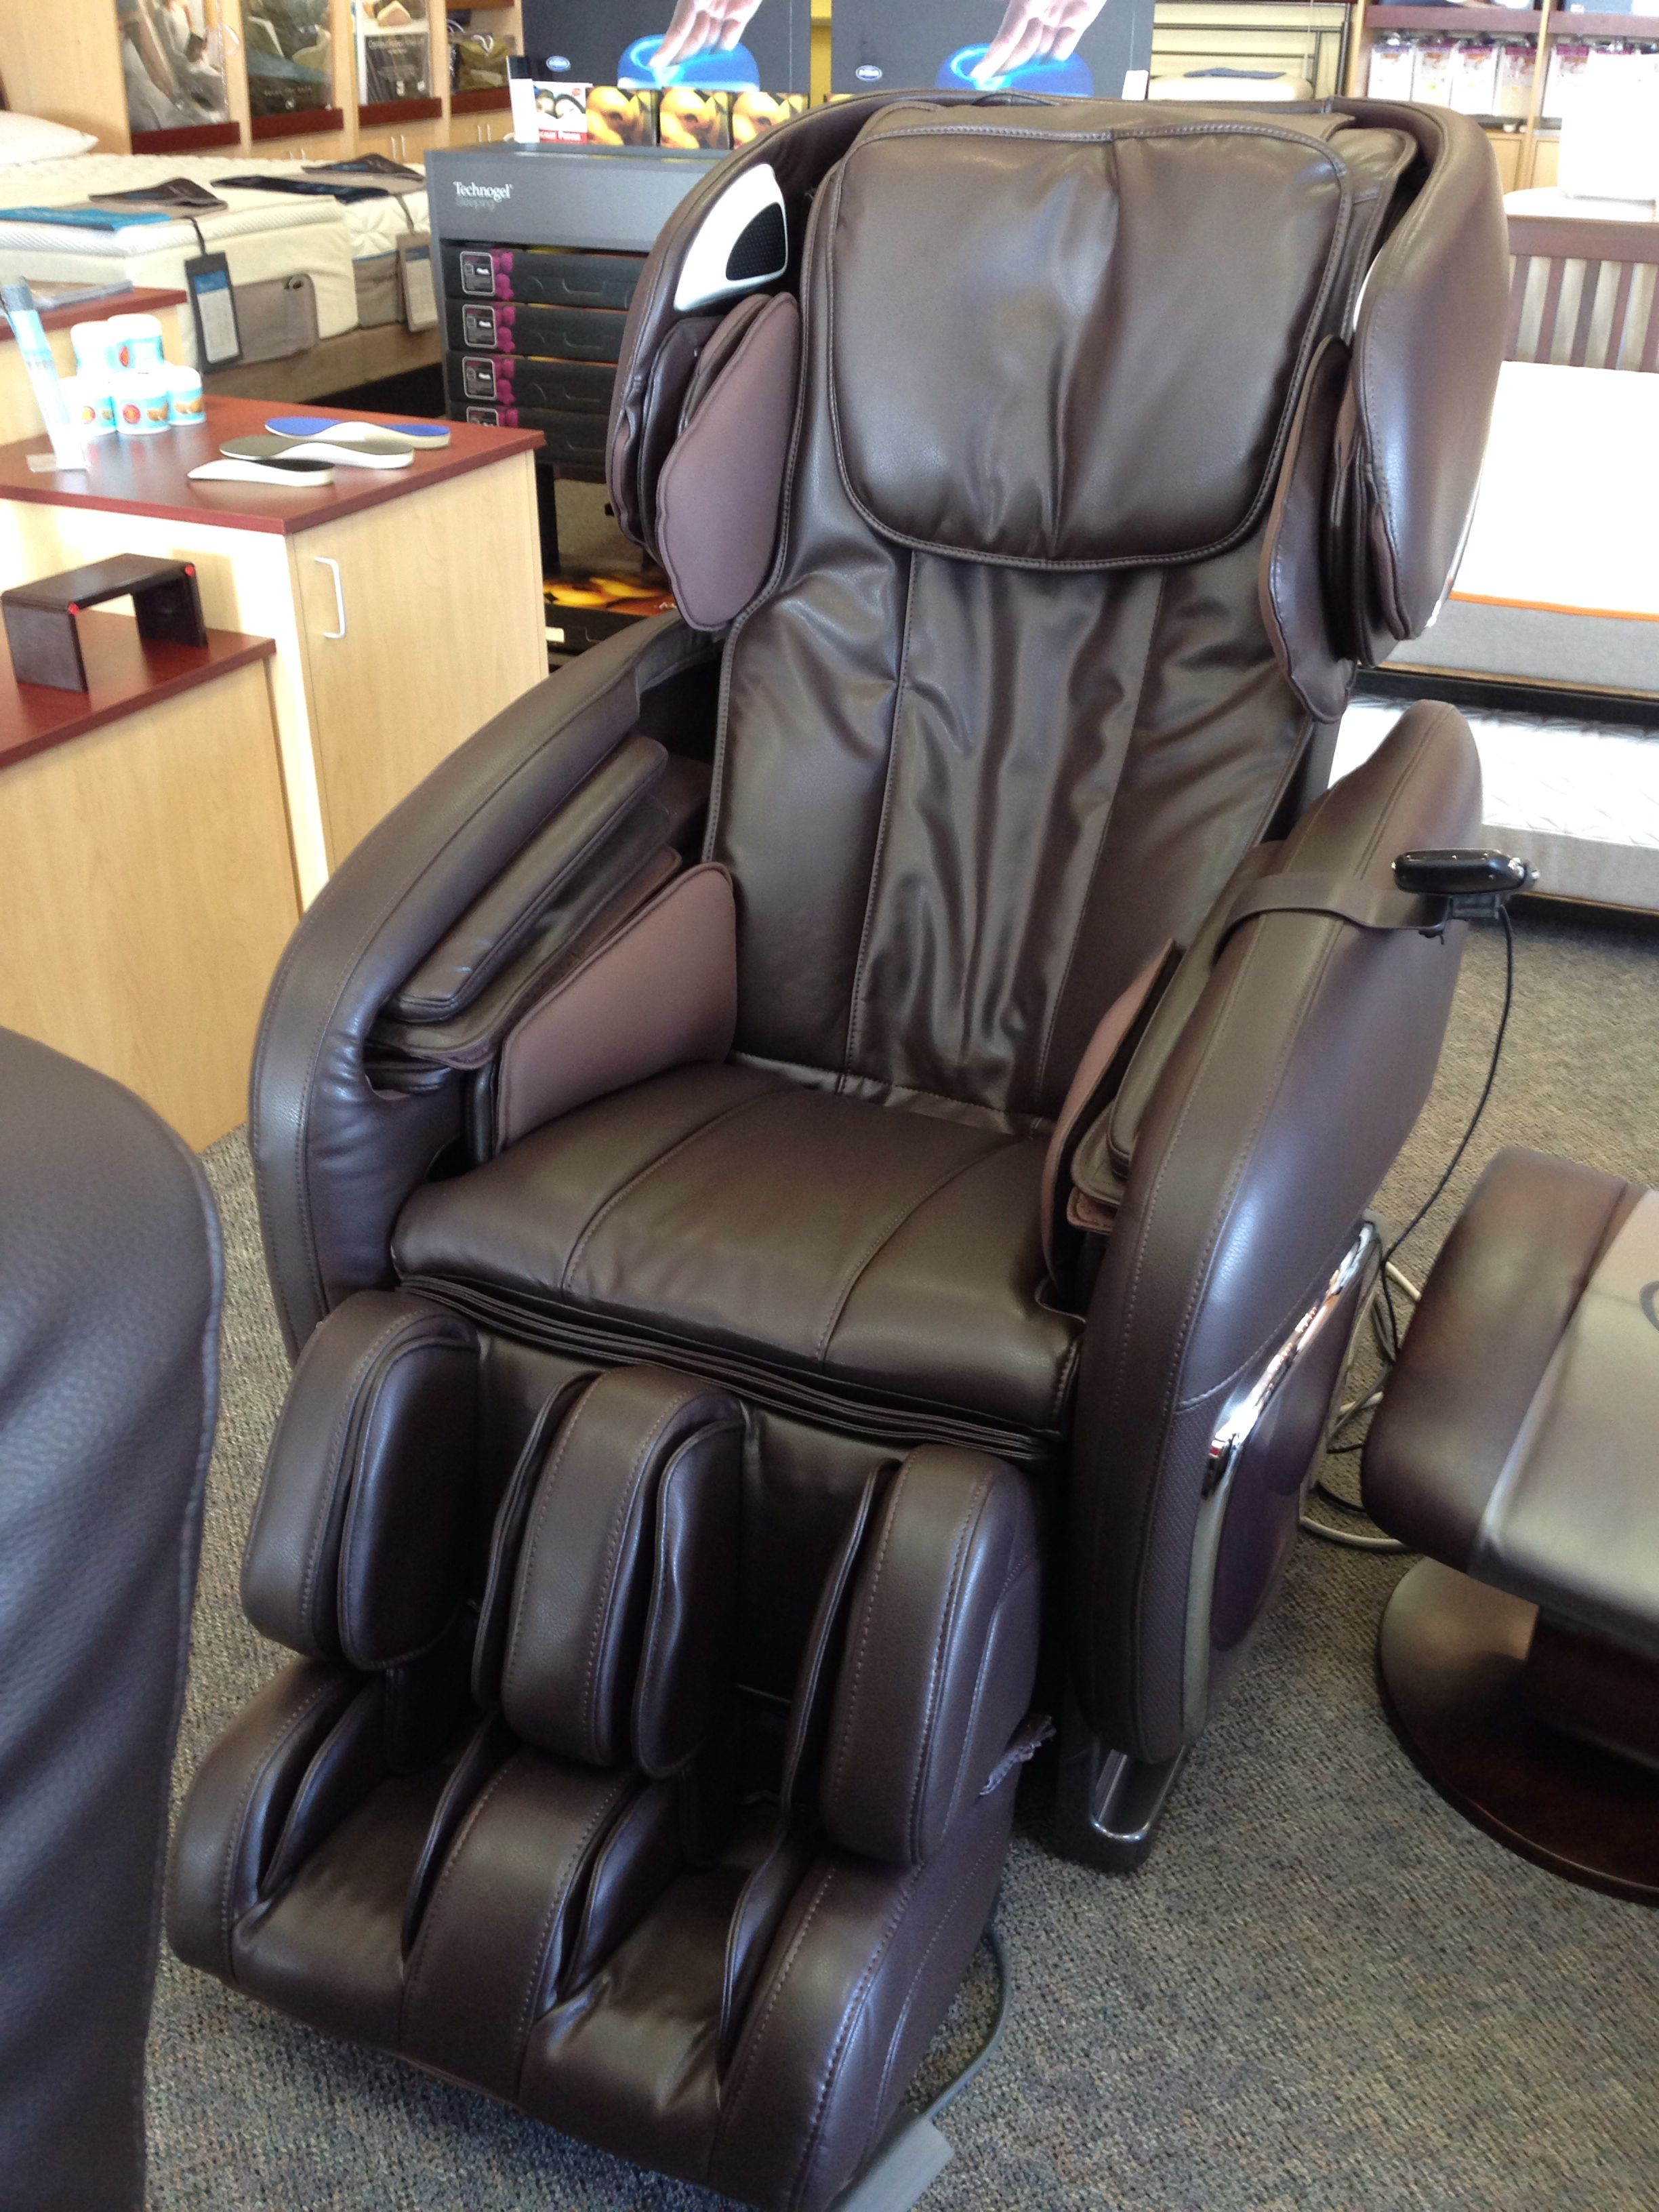 This Is Our Massage Chair The Zen 3 D By Cozzia This